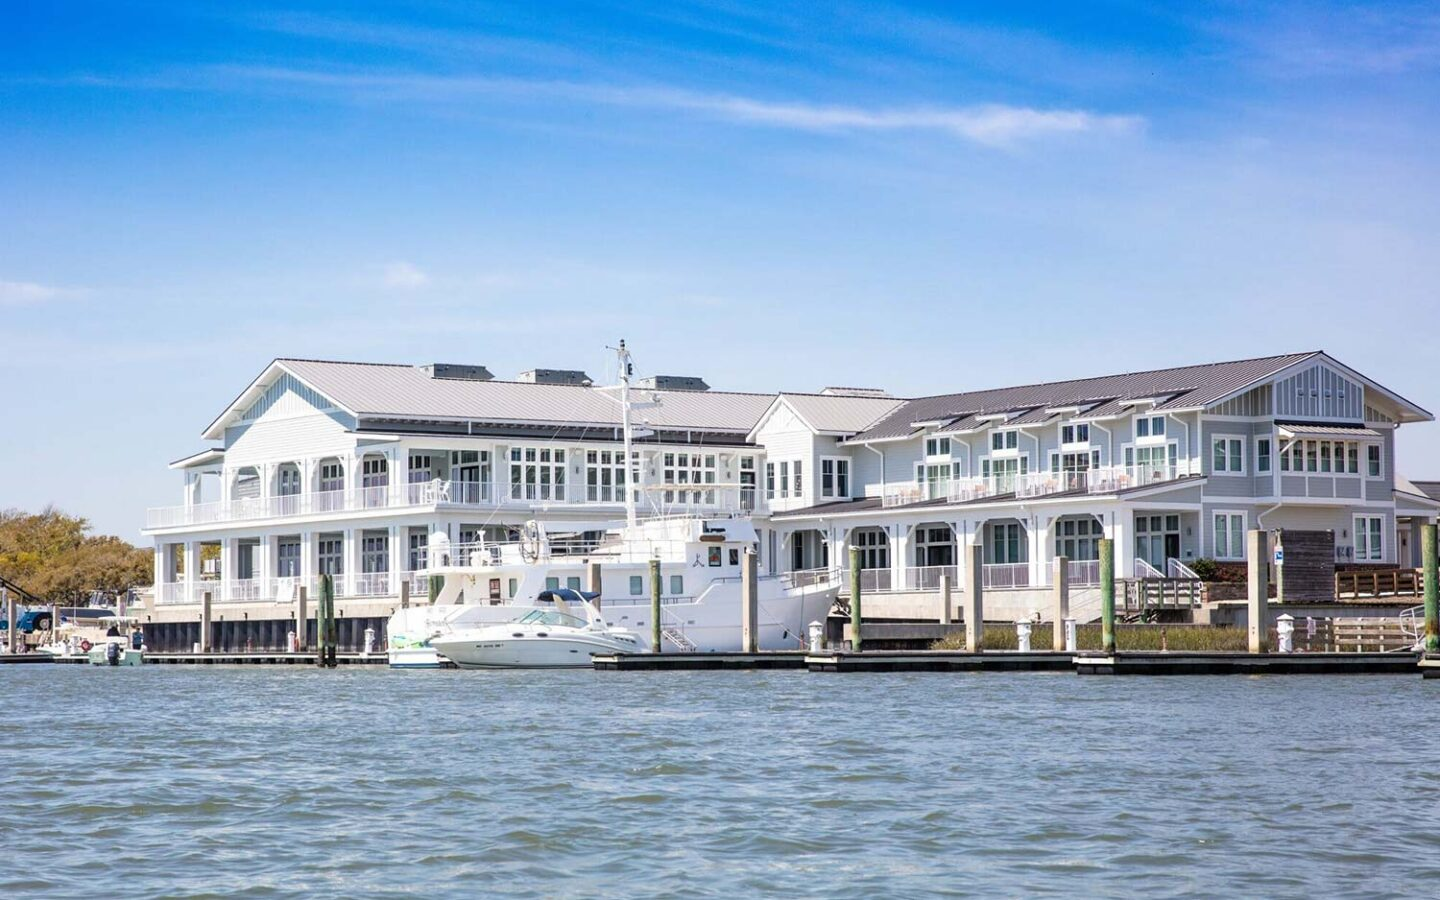 large white restaurant building on a body of water with docked boats next to it